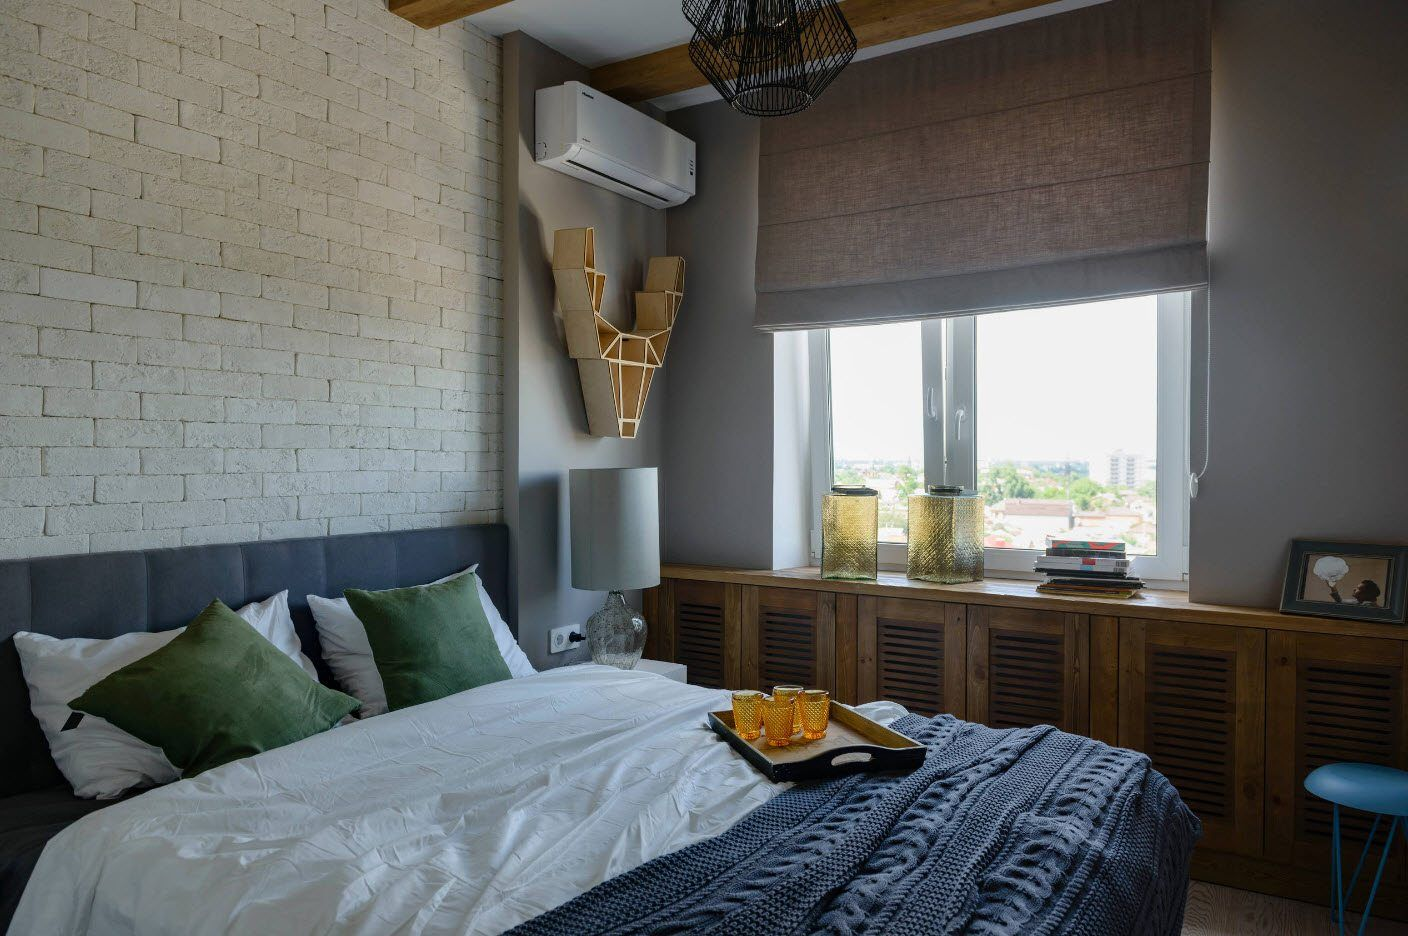 120 Square Feet Bedroom Interior Decoration Ideas. Contemporary styled room with structure wallpaper